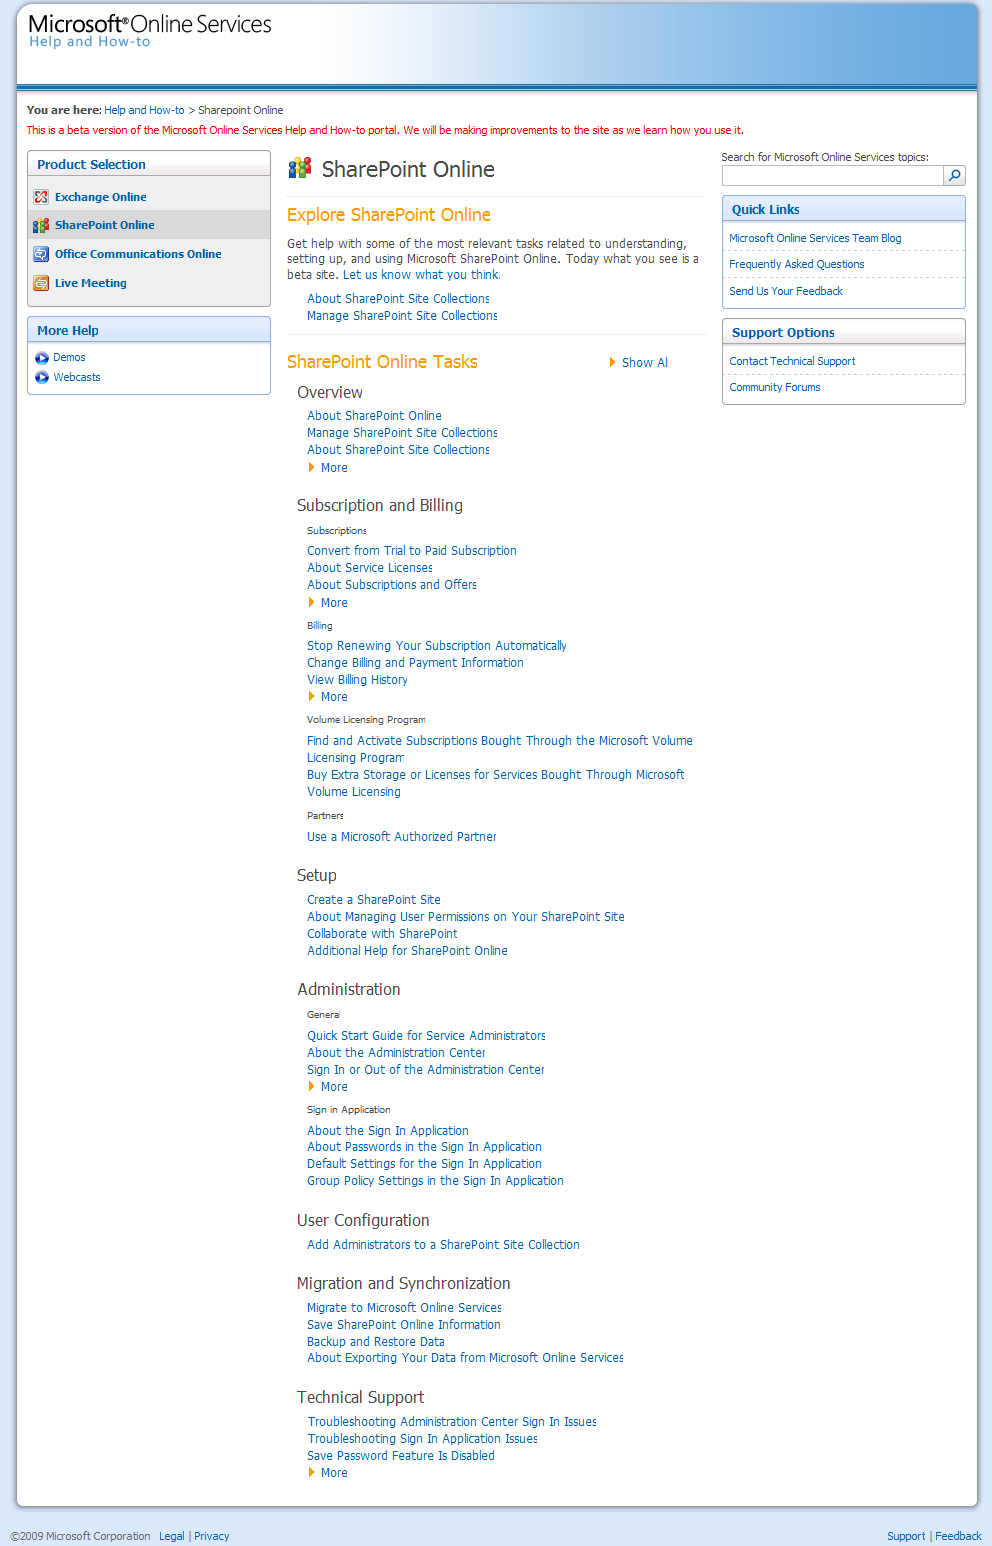 Microsoft Online Services Help for SharePoint Online